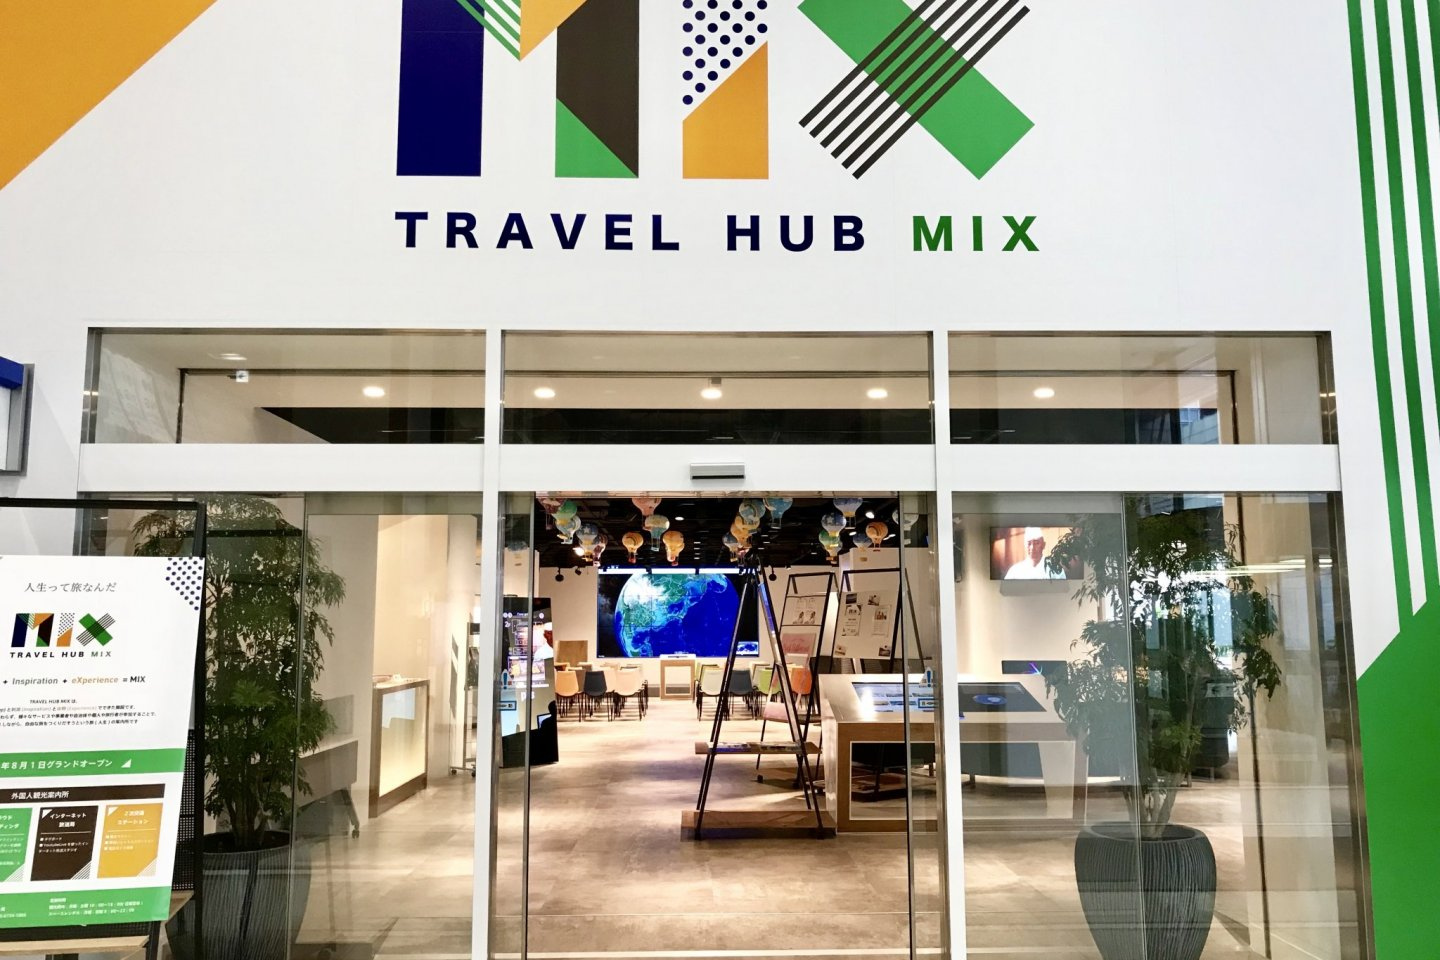 The entrance of Travel Hub Mix